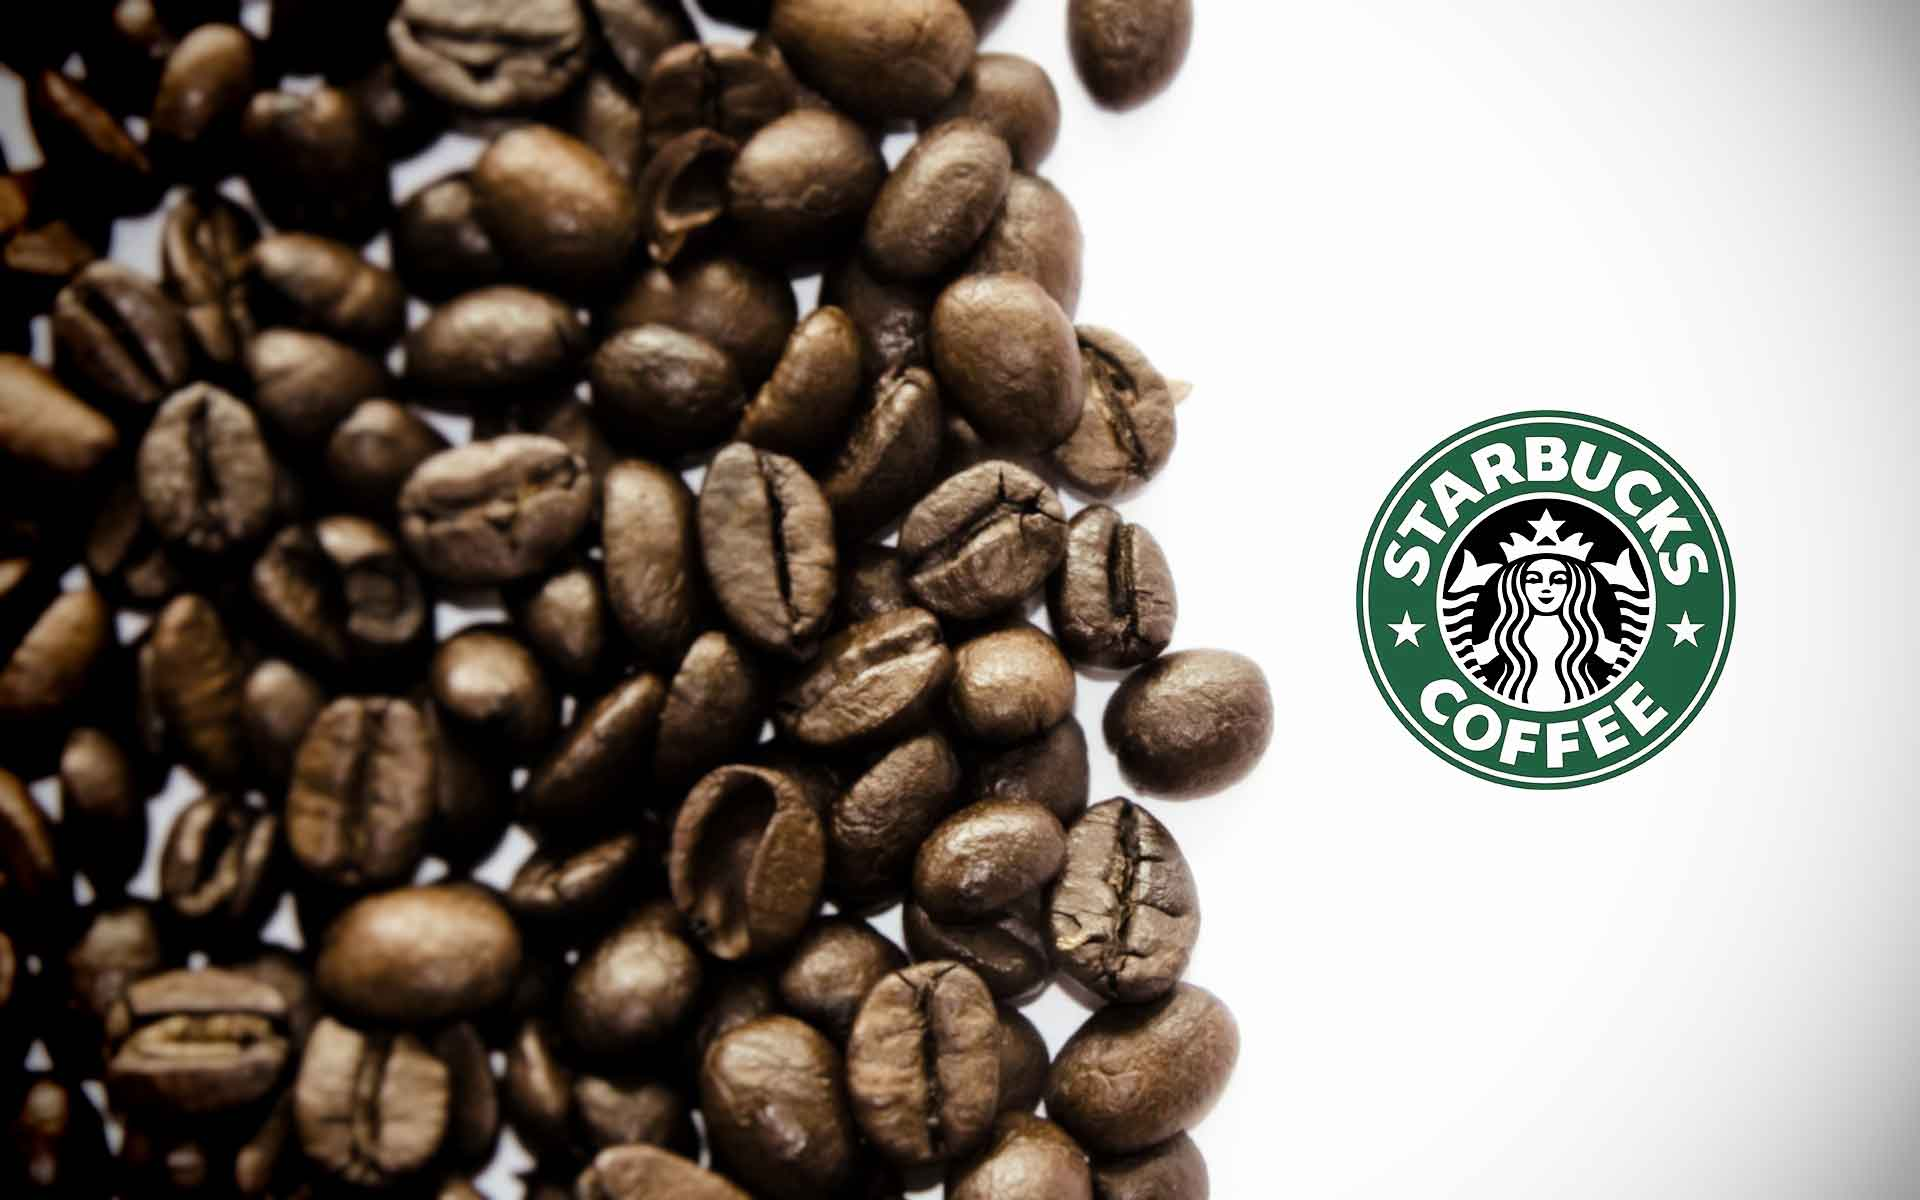 Starbucks Coffee Beans